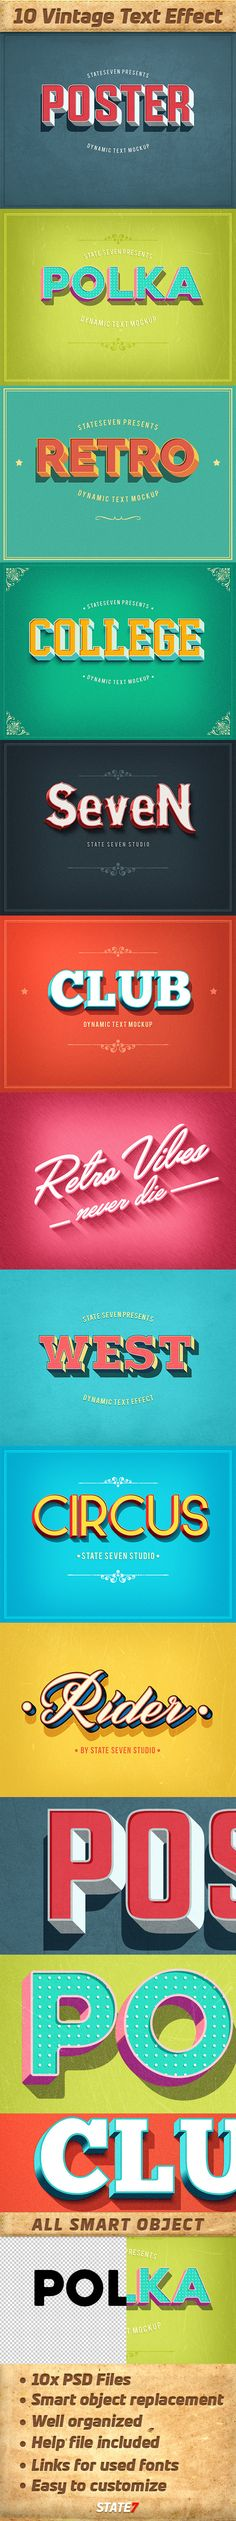 Vintage Text Effects Pack